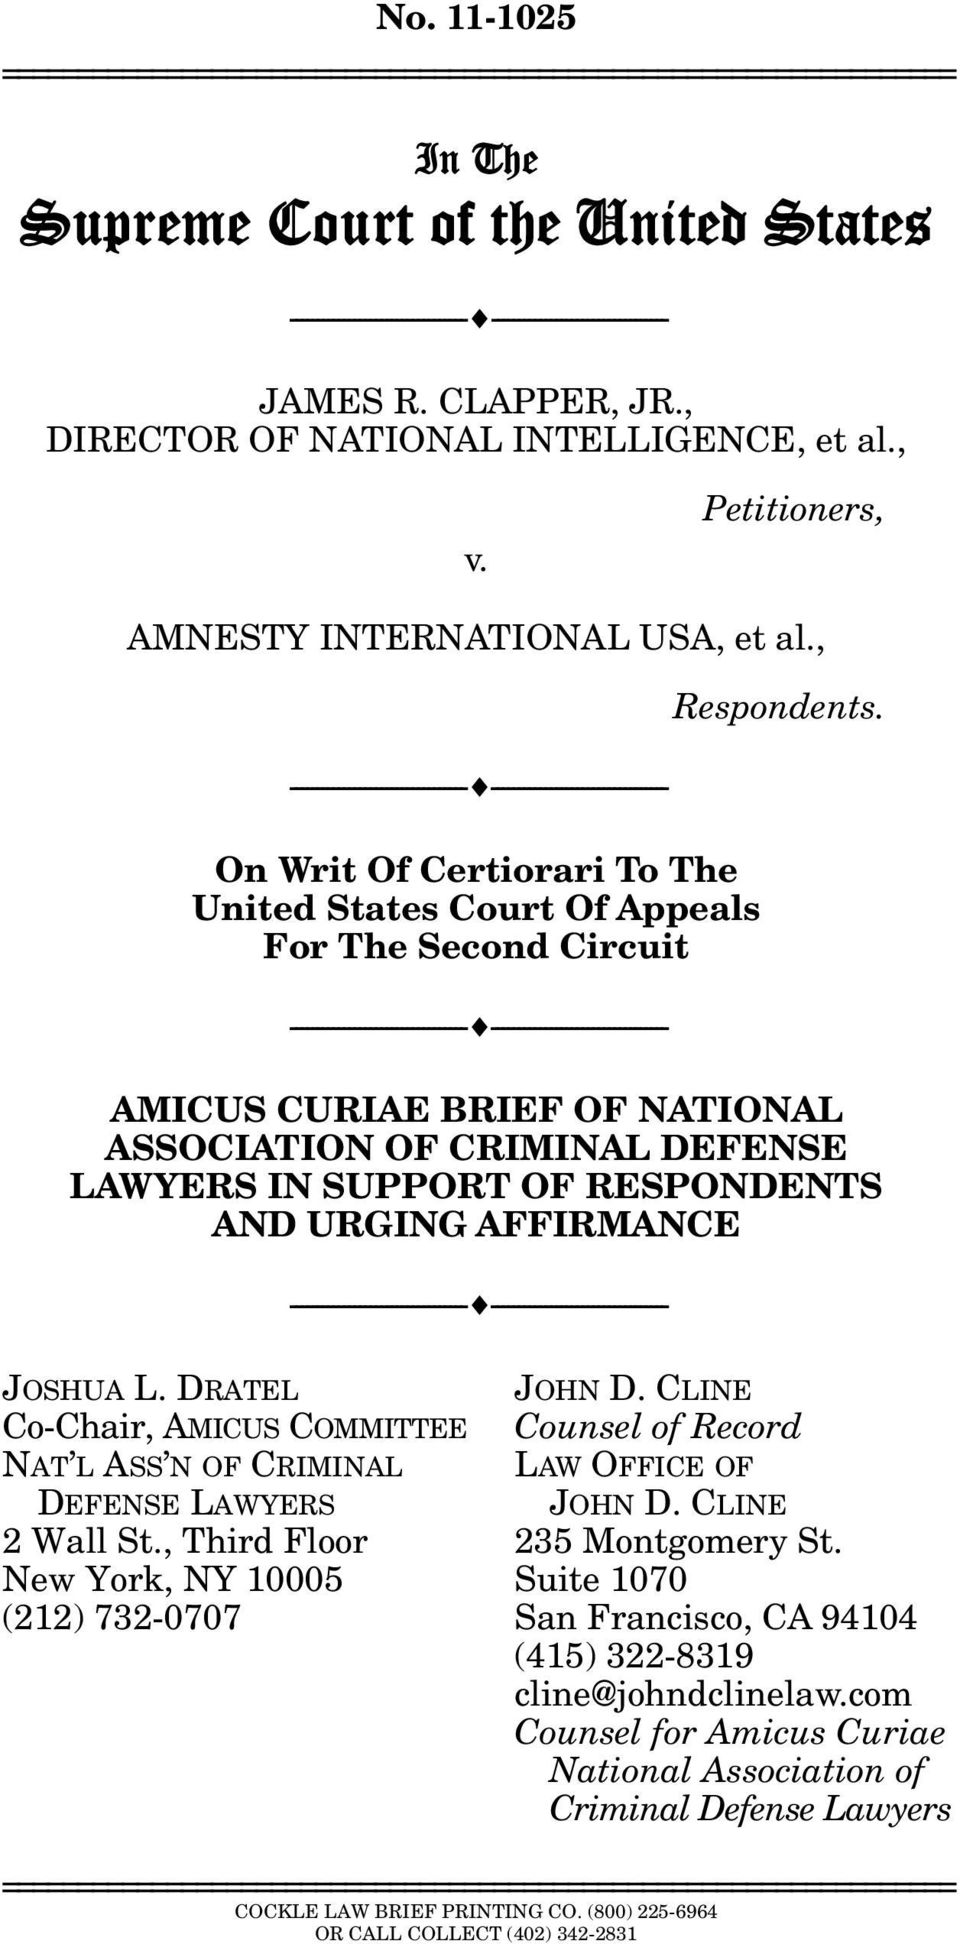 , --------------------------------- --------------------------------- On Writ Of Certiorari To The United States Court Of Appeals For The Second Circuit ---------------------------------